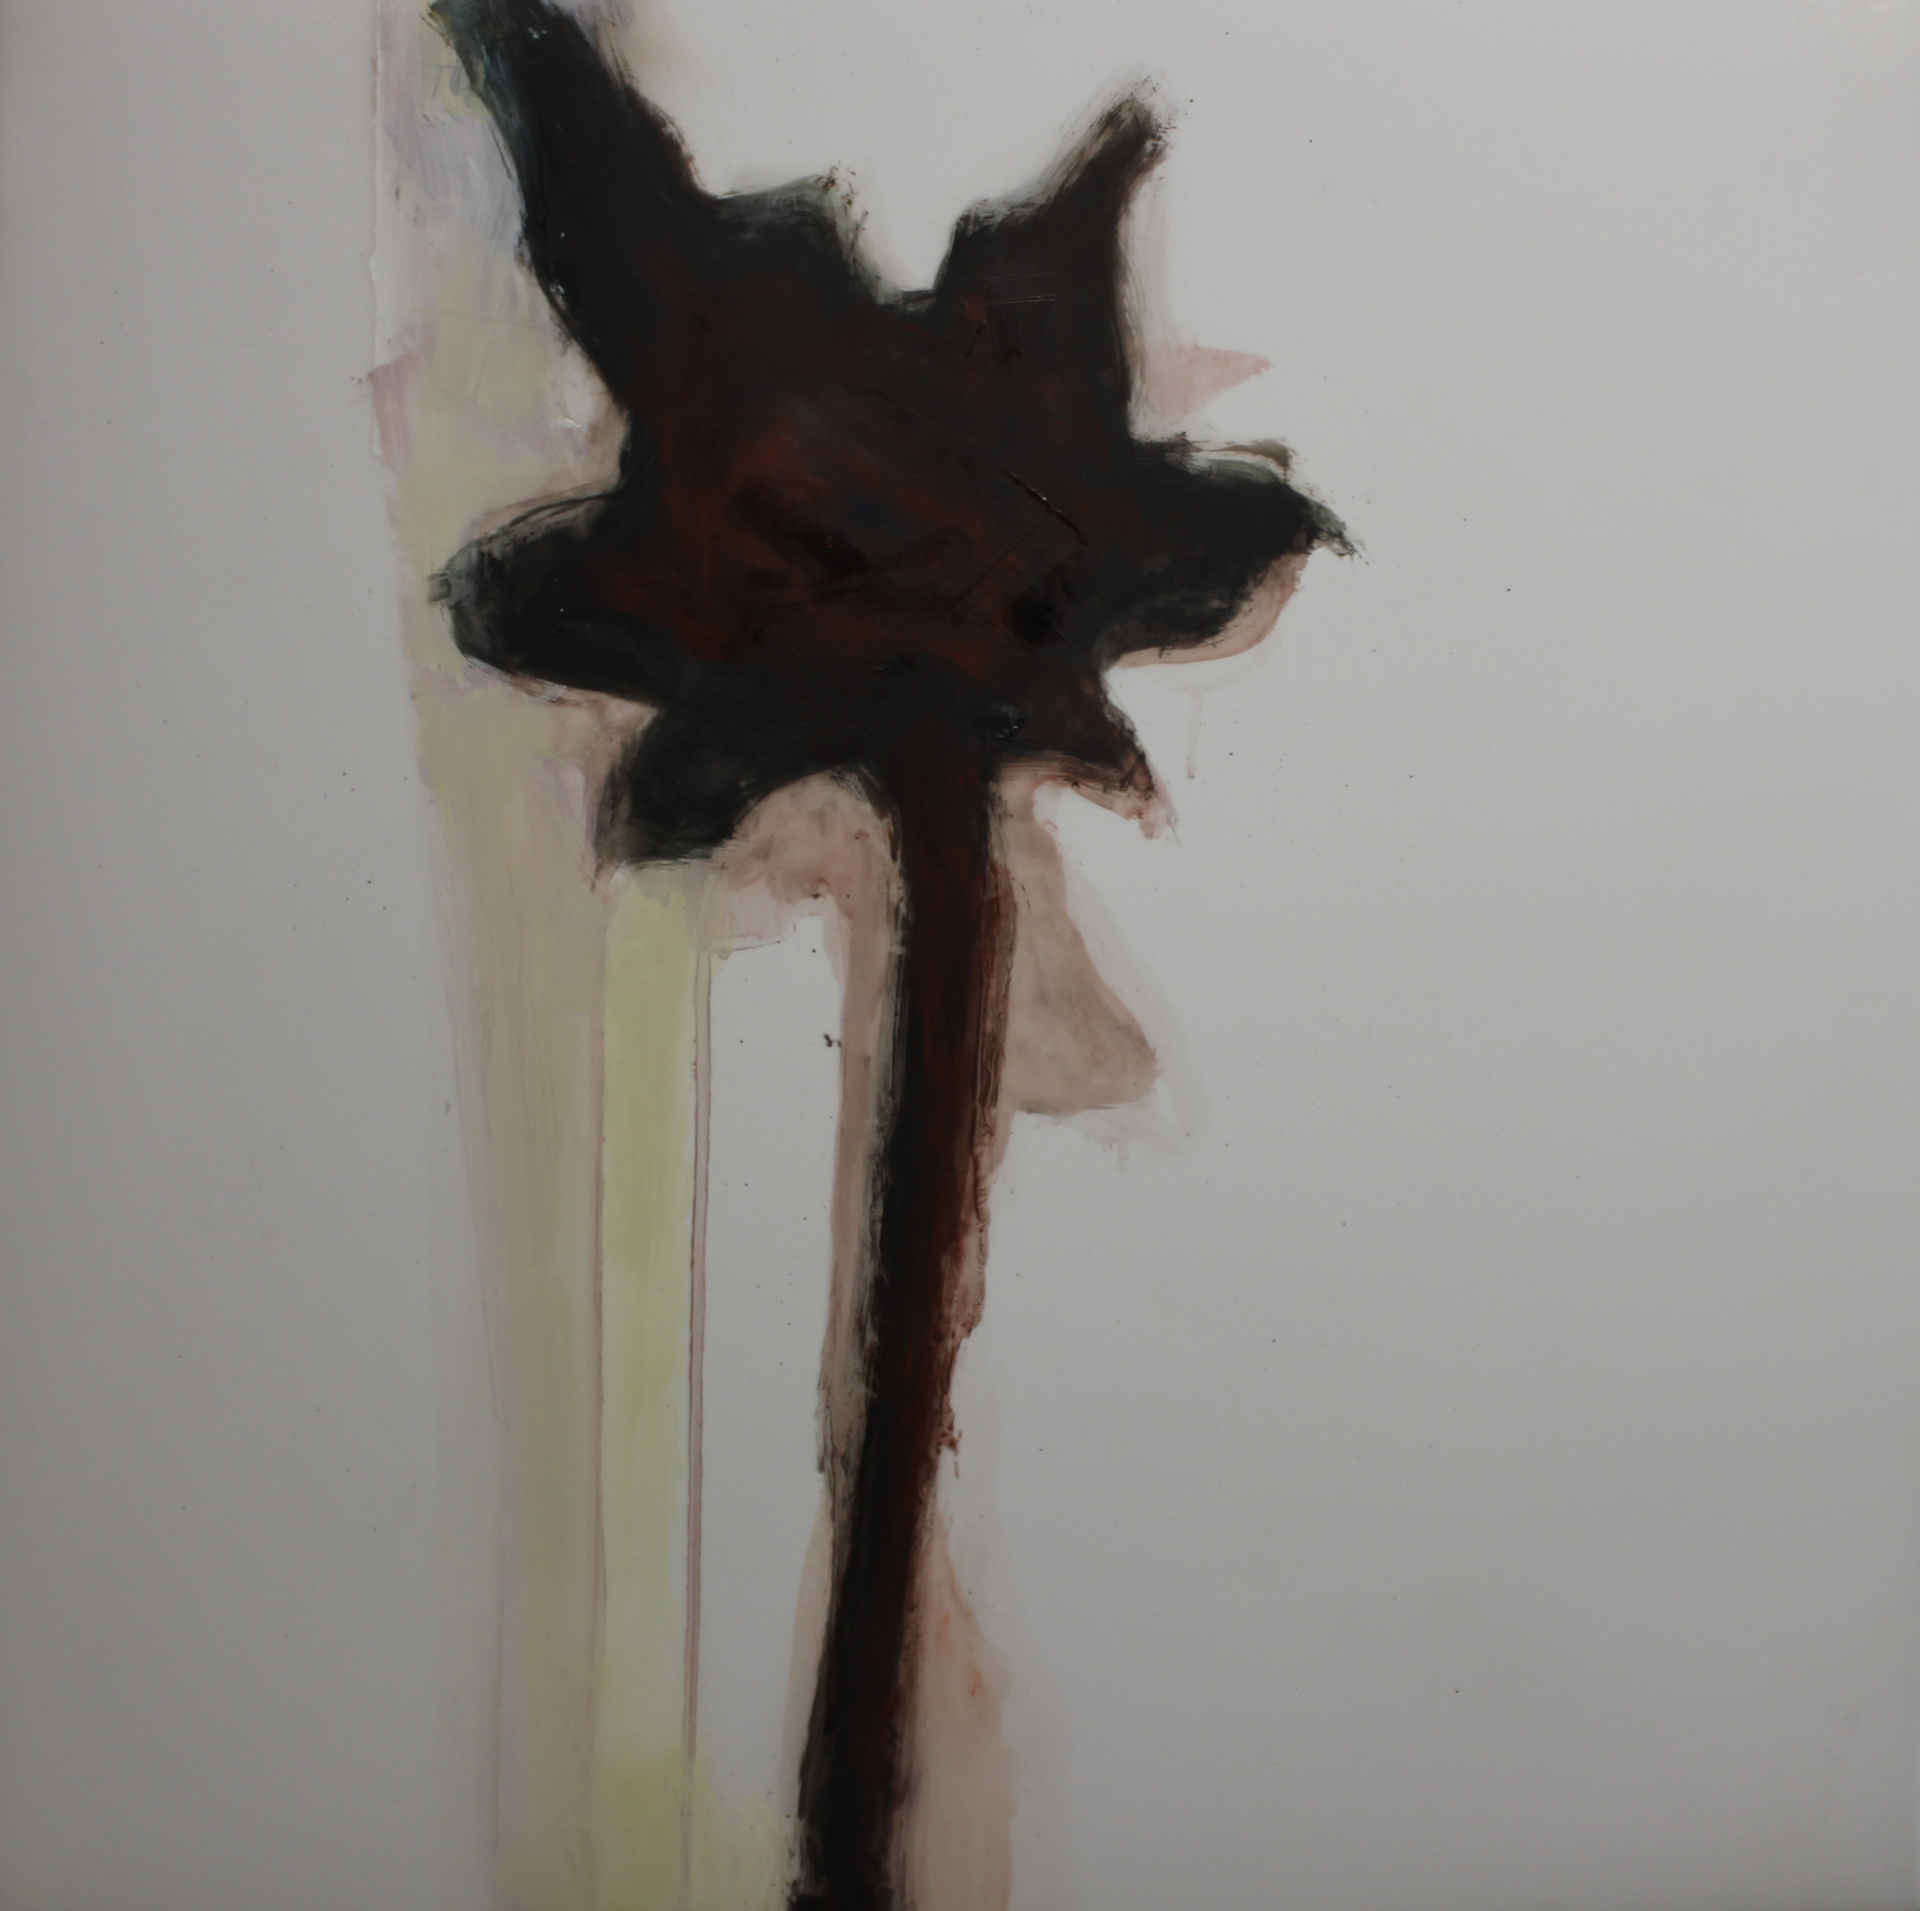 WEST OF THE 4TH #50 (FLOWER) - 21X21 - OIL ON MYLAR - 2014